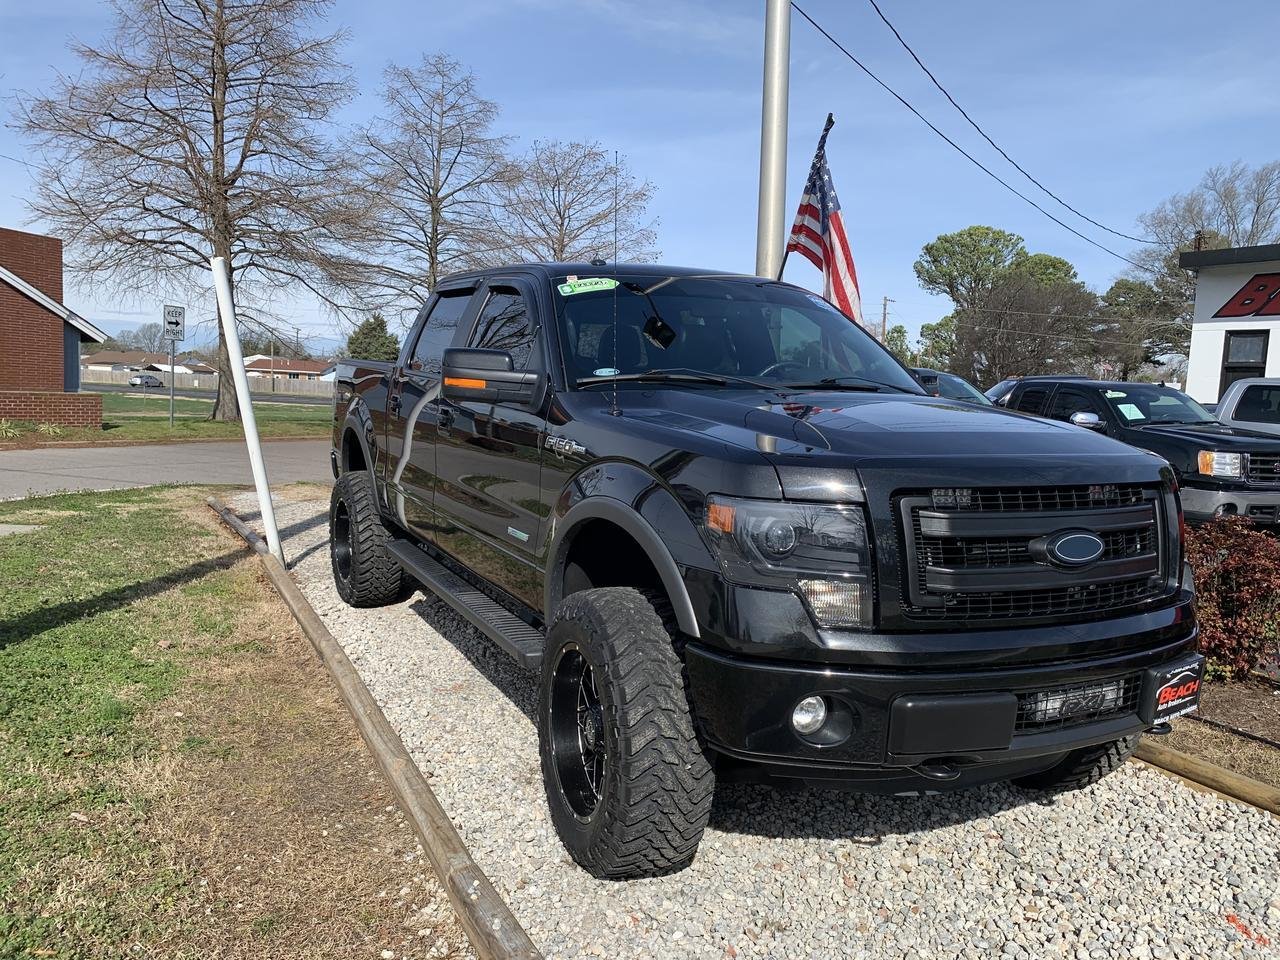 2013 FORD F-150 FX4 SUPERCREW 4X4, WARRANTY, LEATHER, HEATED/COOLED SEATS, NAV, SUNROOF, REMOTE START, 1 OWNER! Norfolk VA